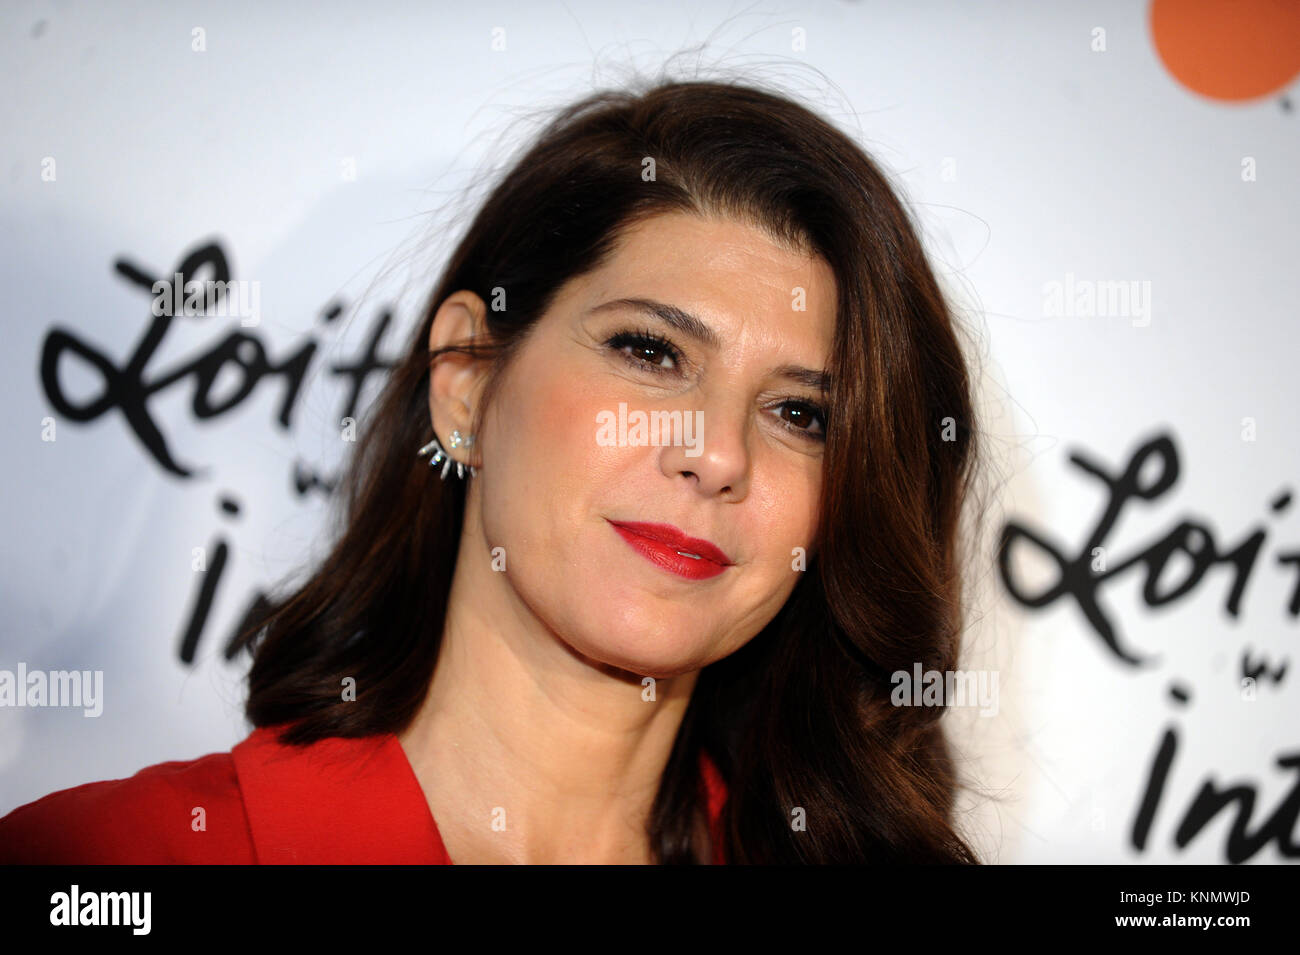 NEW YORK, NY - JANUARY 14: Marisa Tomei attends the New York premiere of 'Loitering With Intent' at SVA - Stock Image